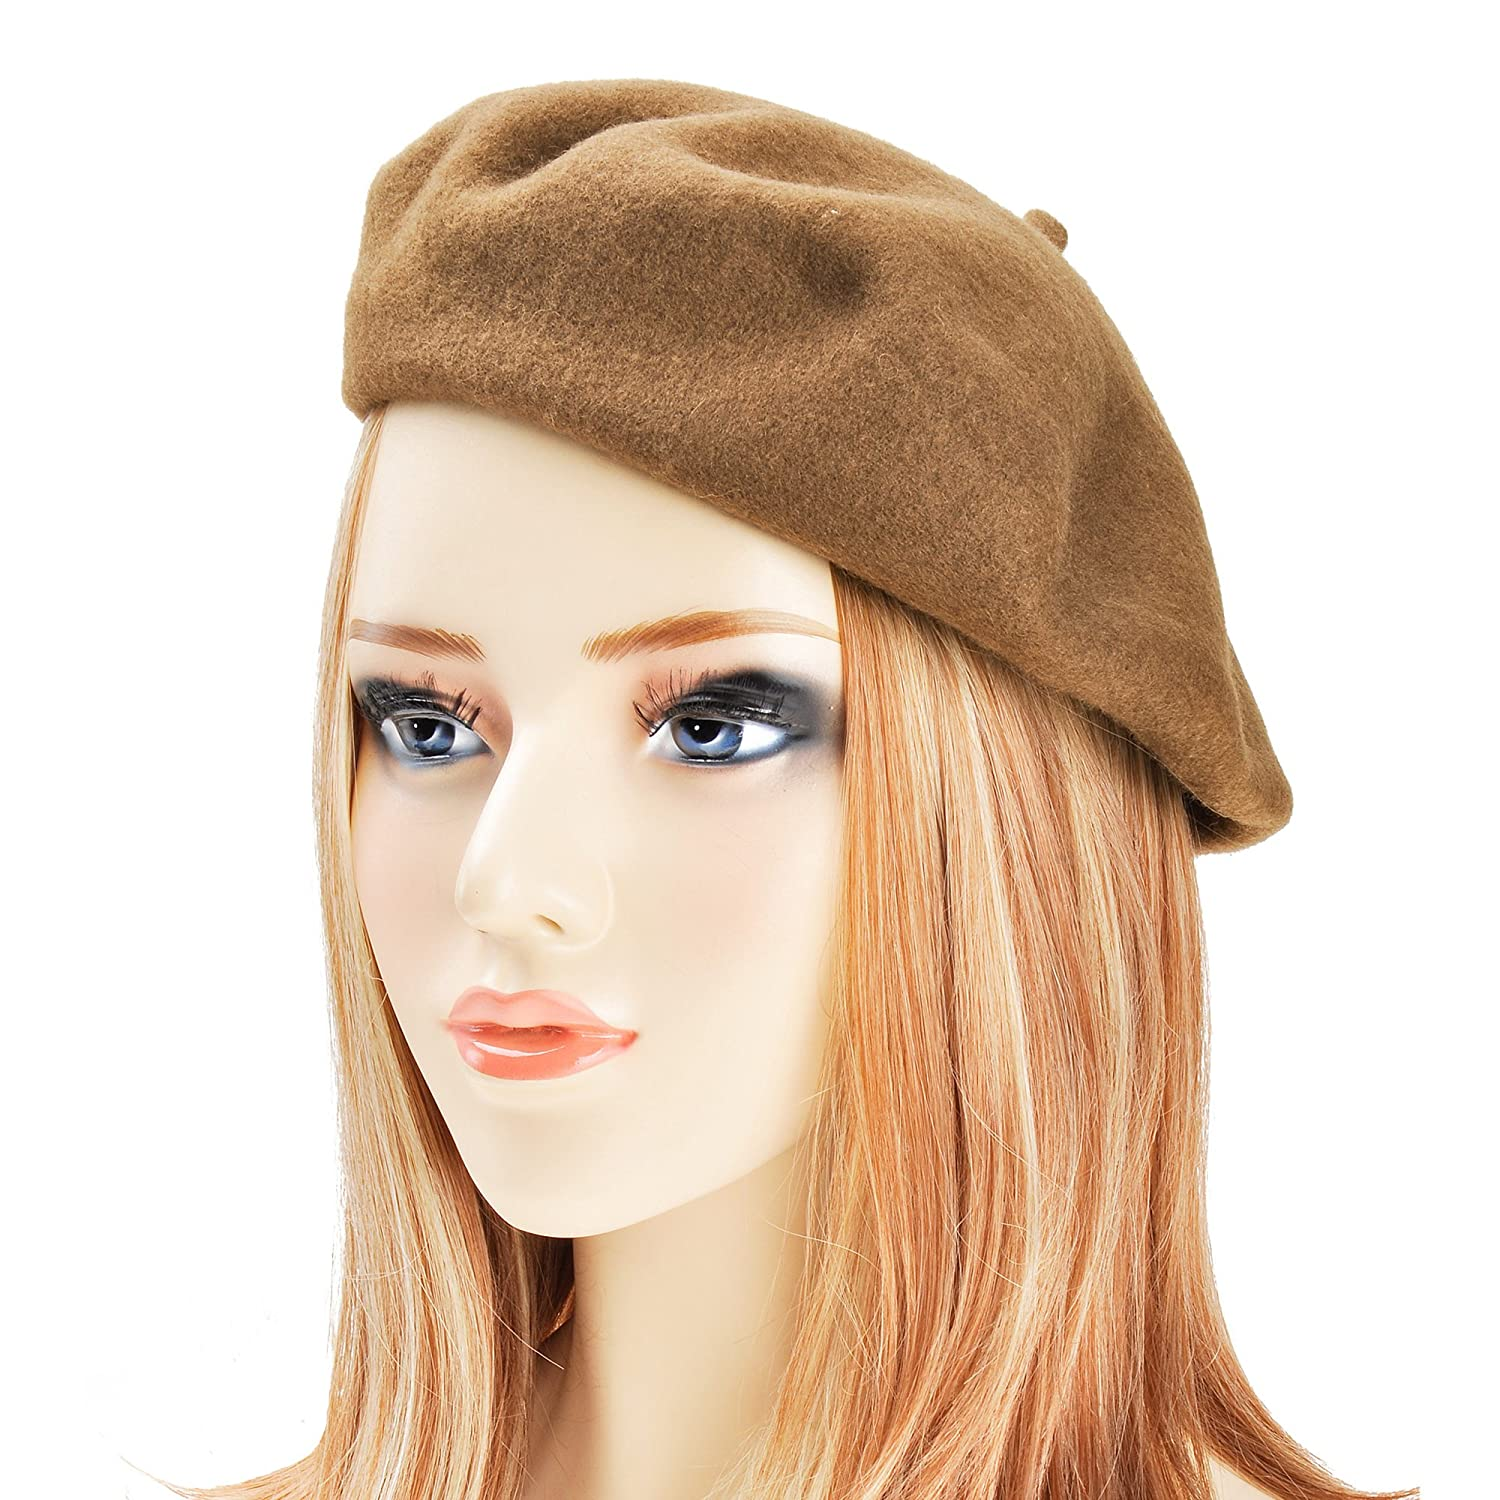 Wool Beret Hat Classic Solid Color French Beret for Women Girls Black ZYJ-MZ-046-green